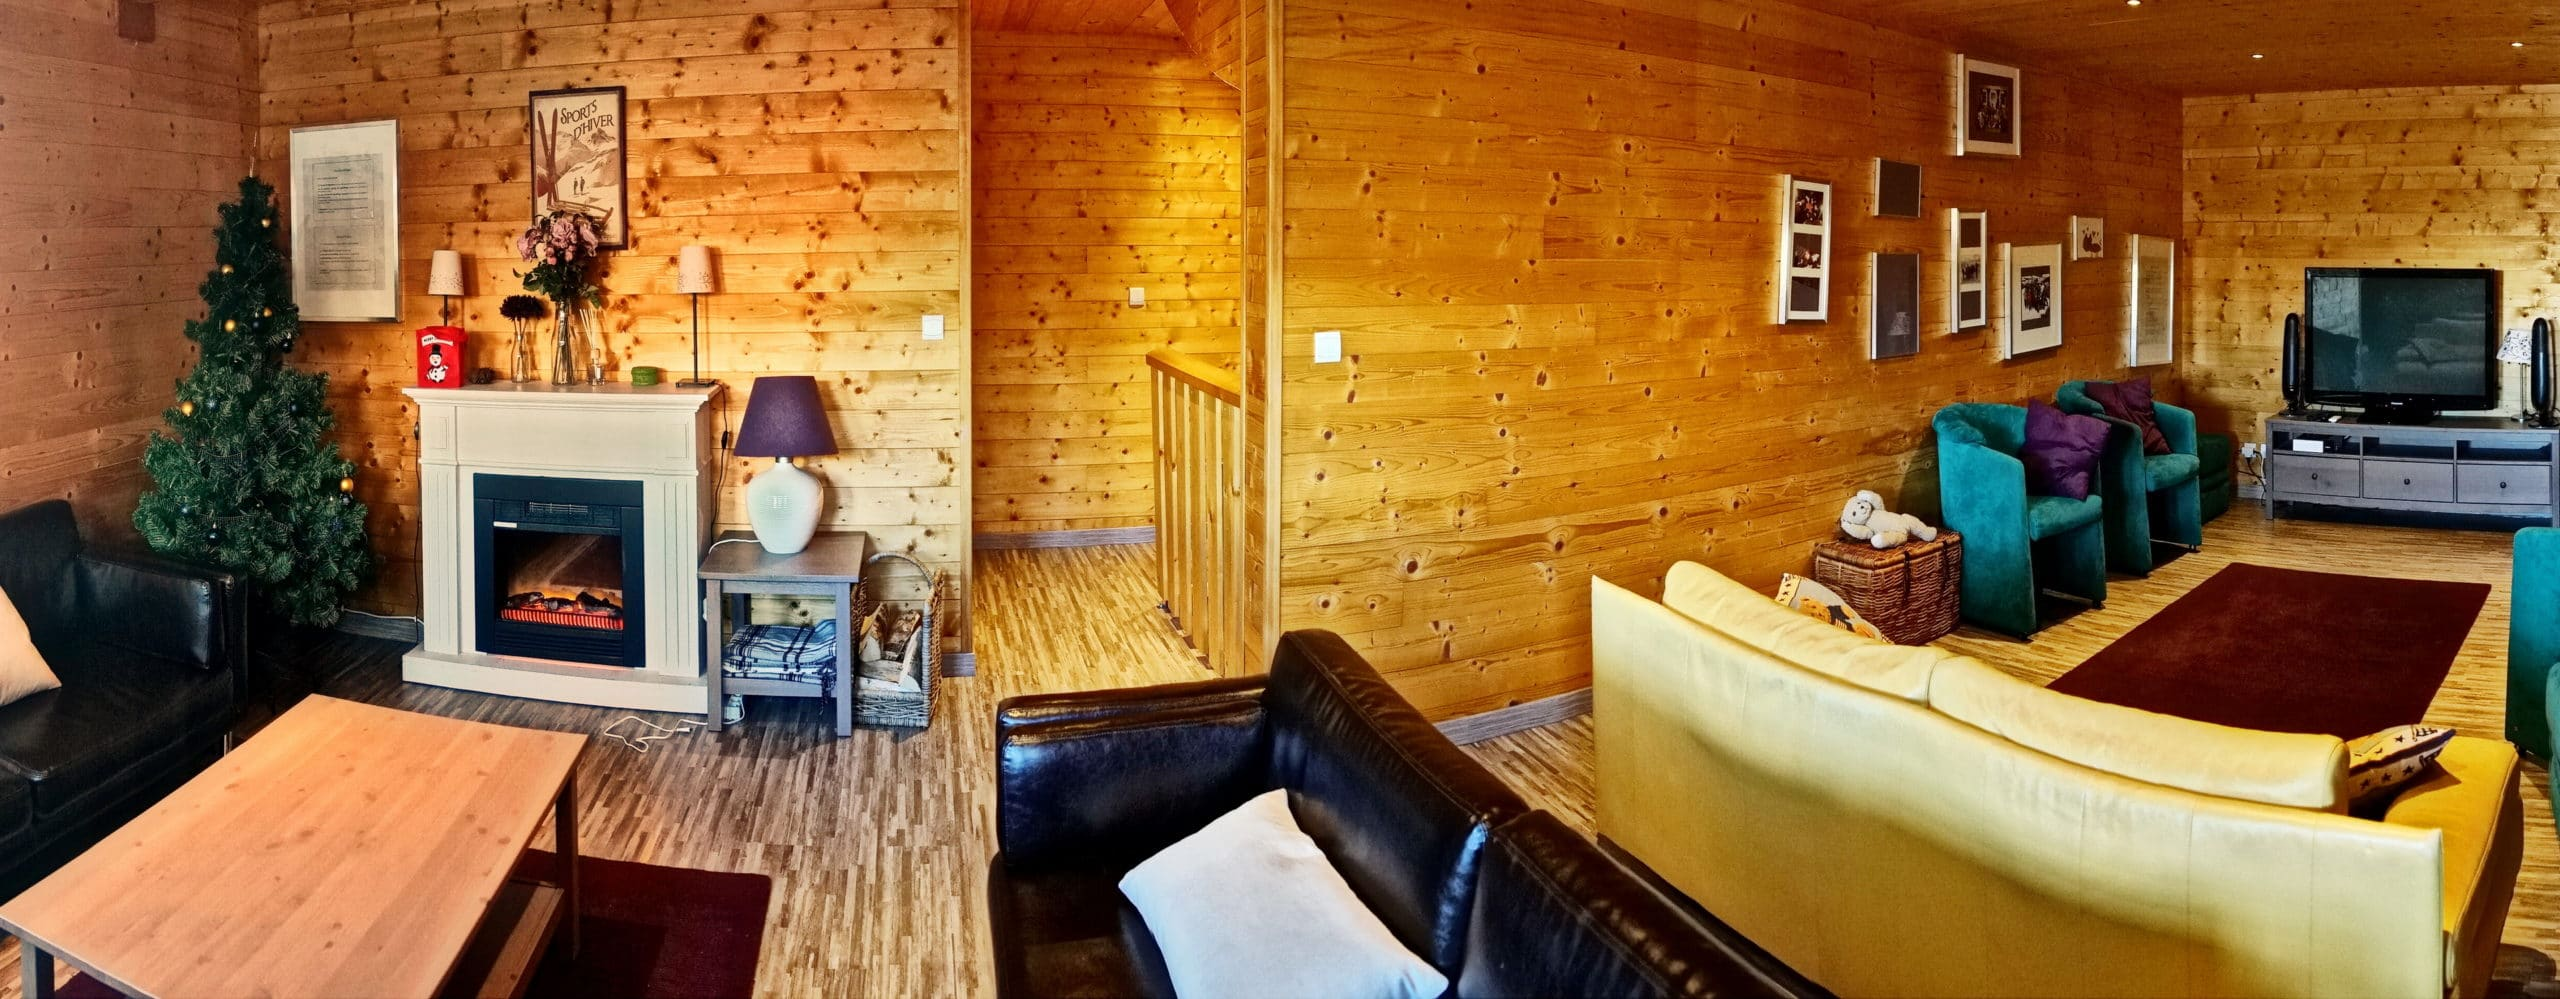 Double salon Chalet Hestia